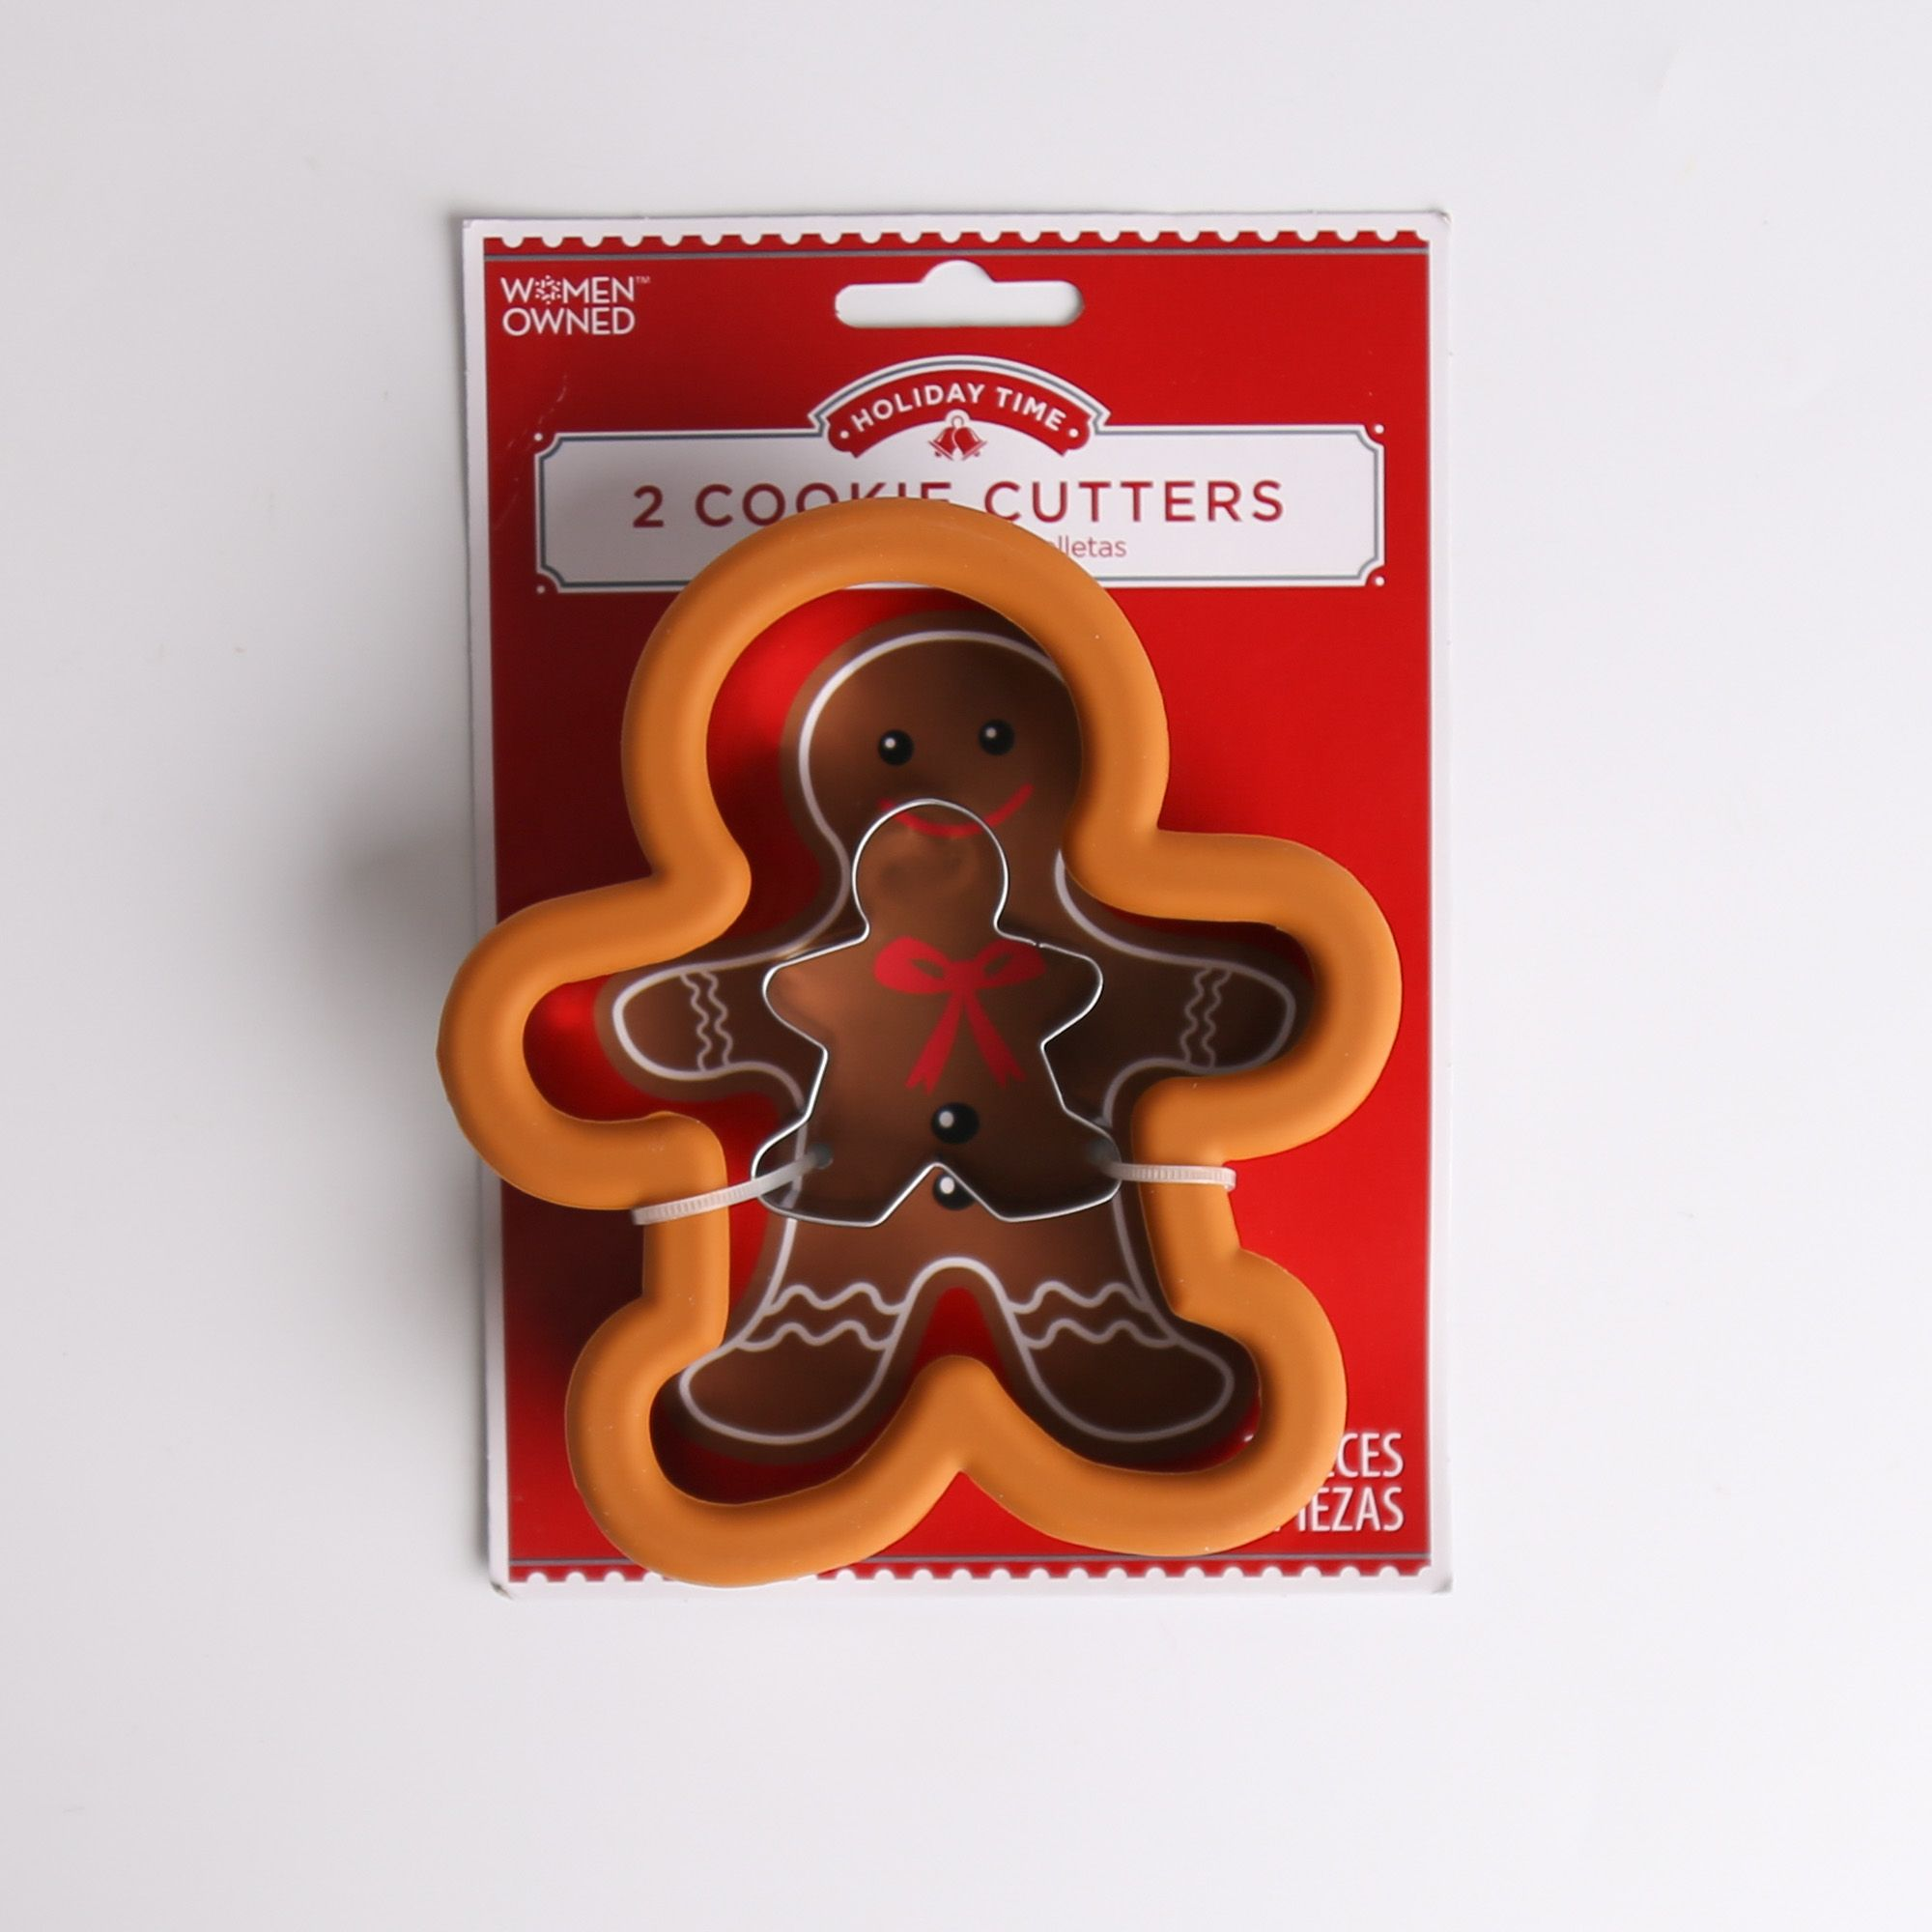 Home (With images) Gingerbread man, Holiday time